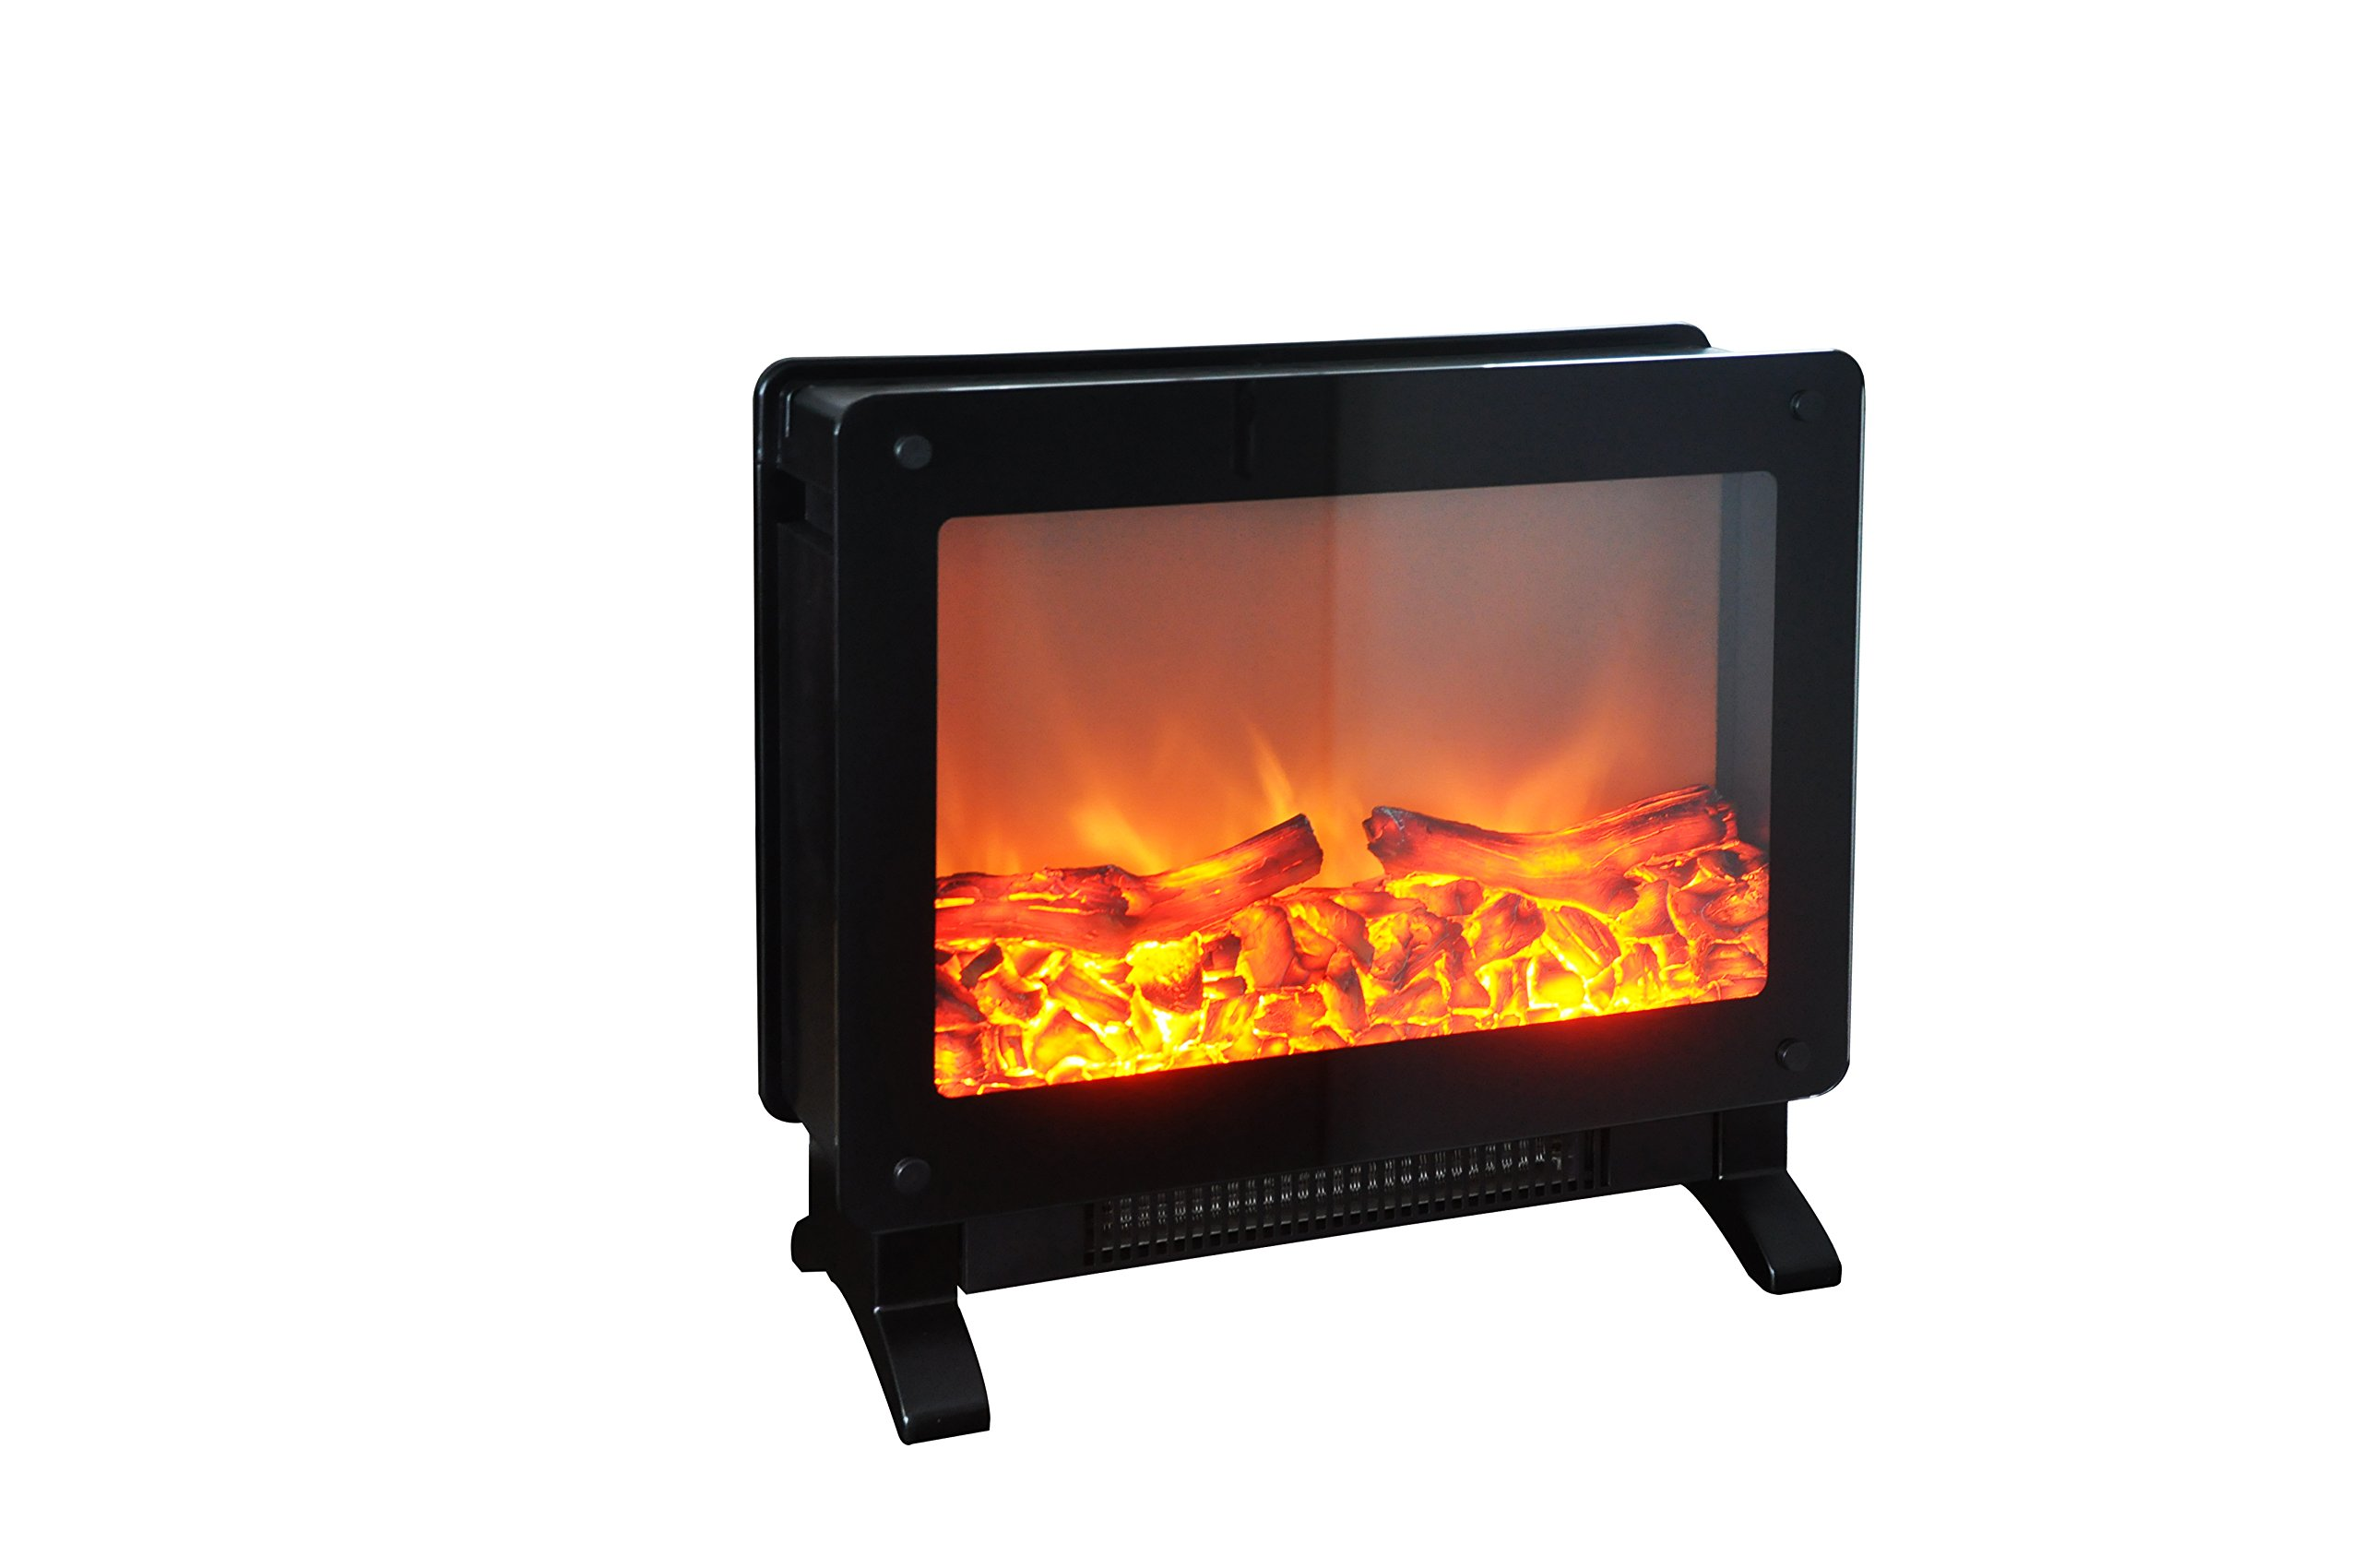 youtube electric duraflame fireplace with review heater log watch space